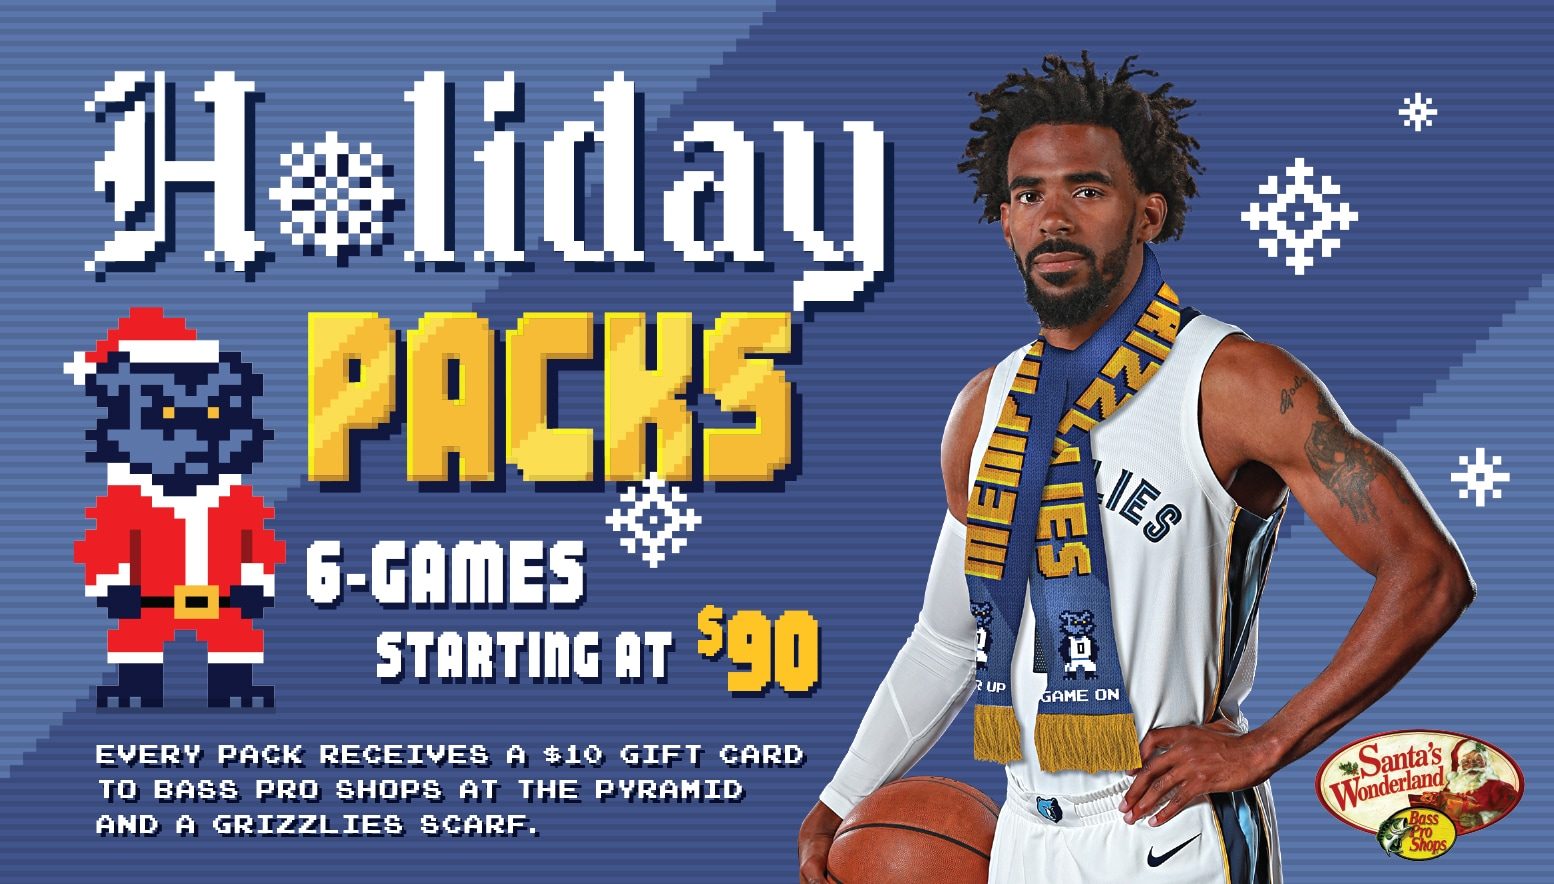 Grizzlies announce 6-Game Holiday Pack  Cyber Monday ticket promotions